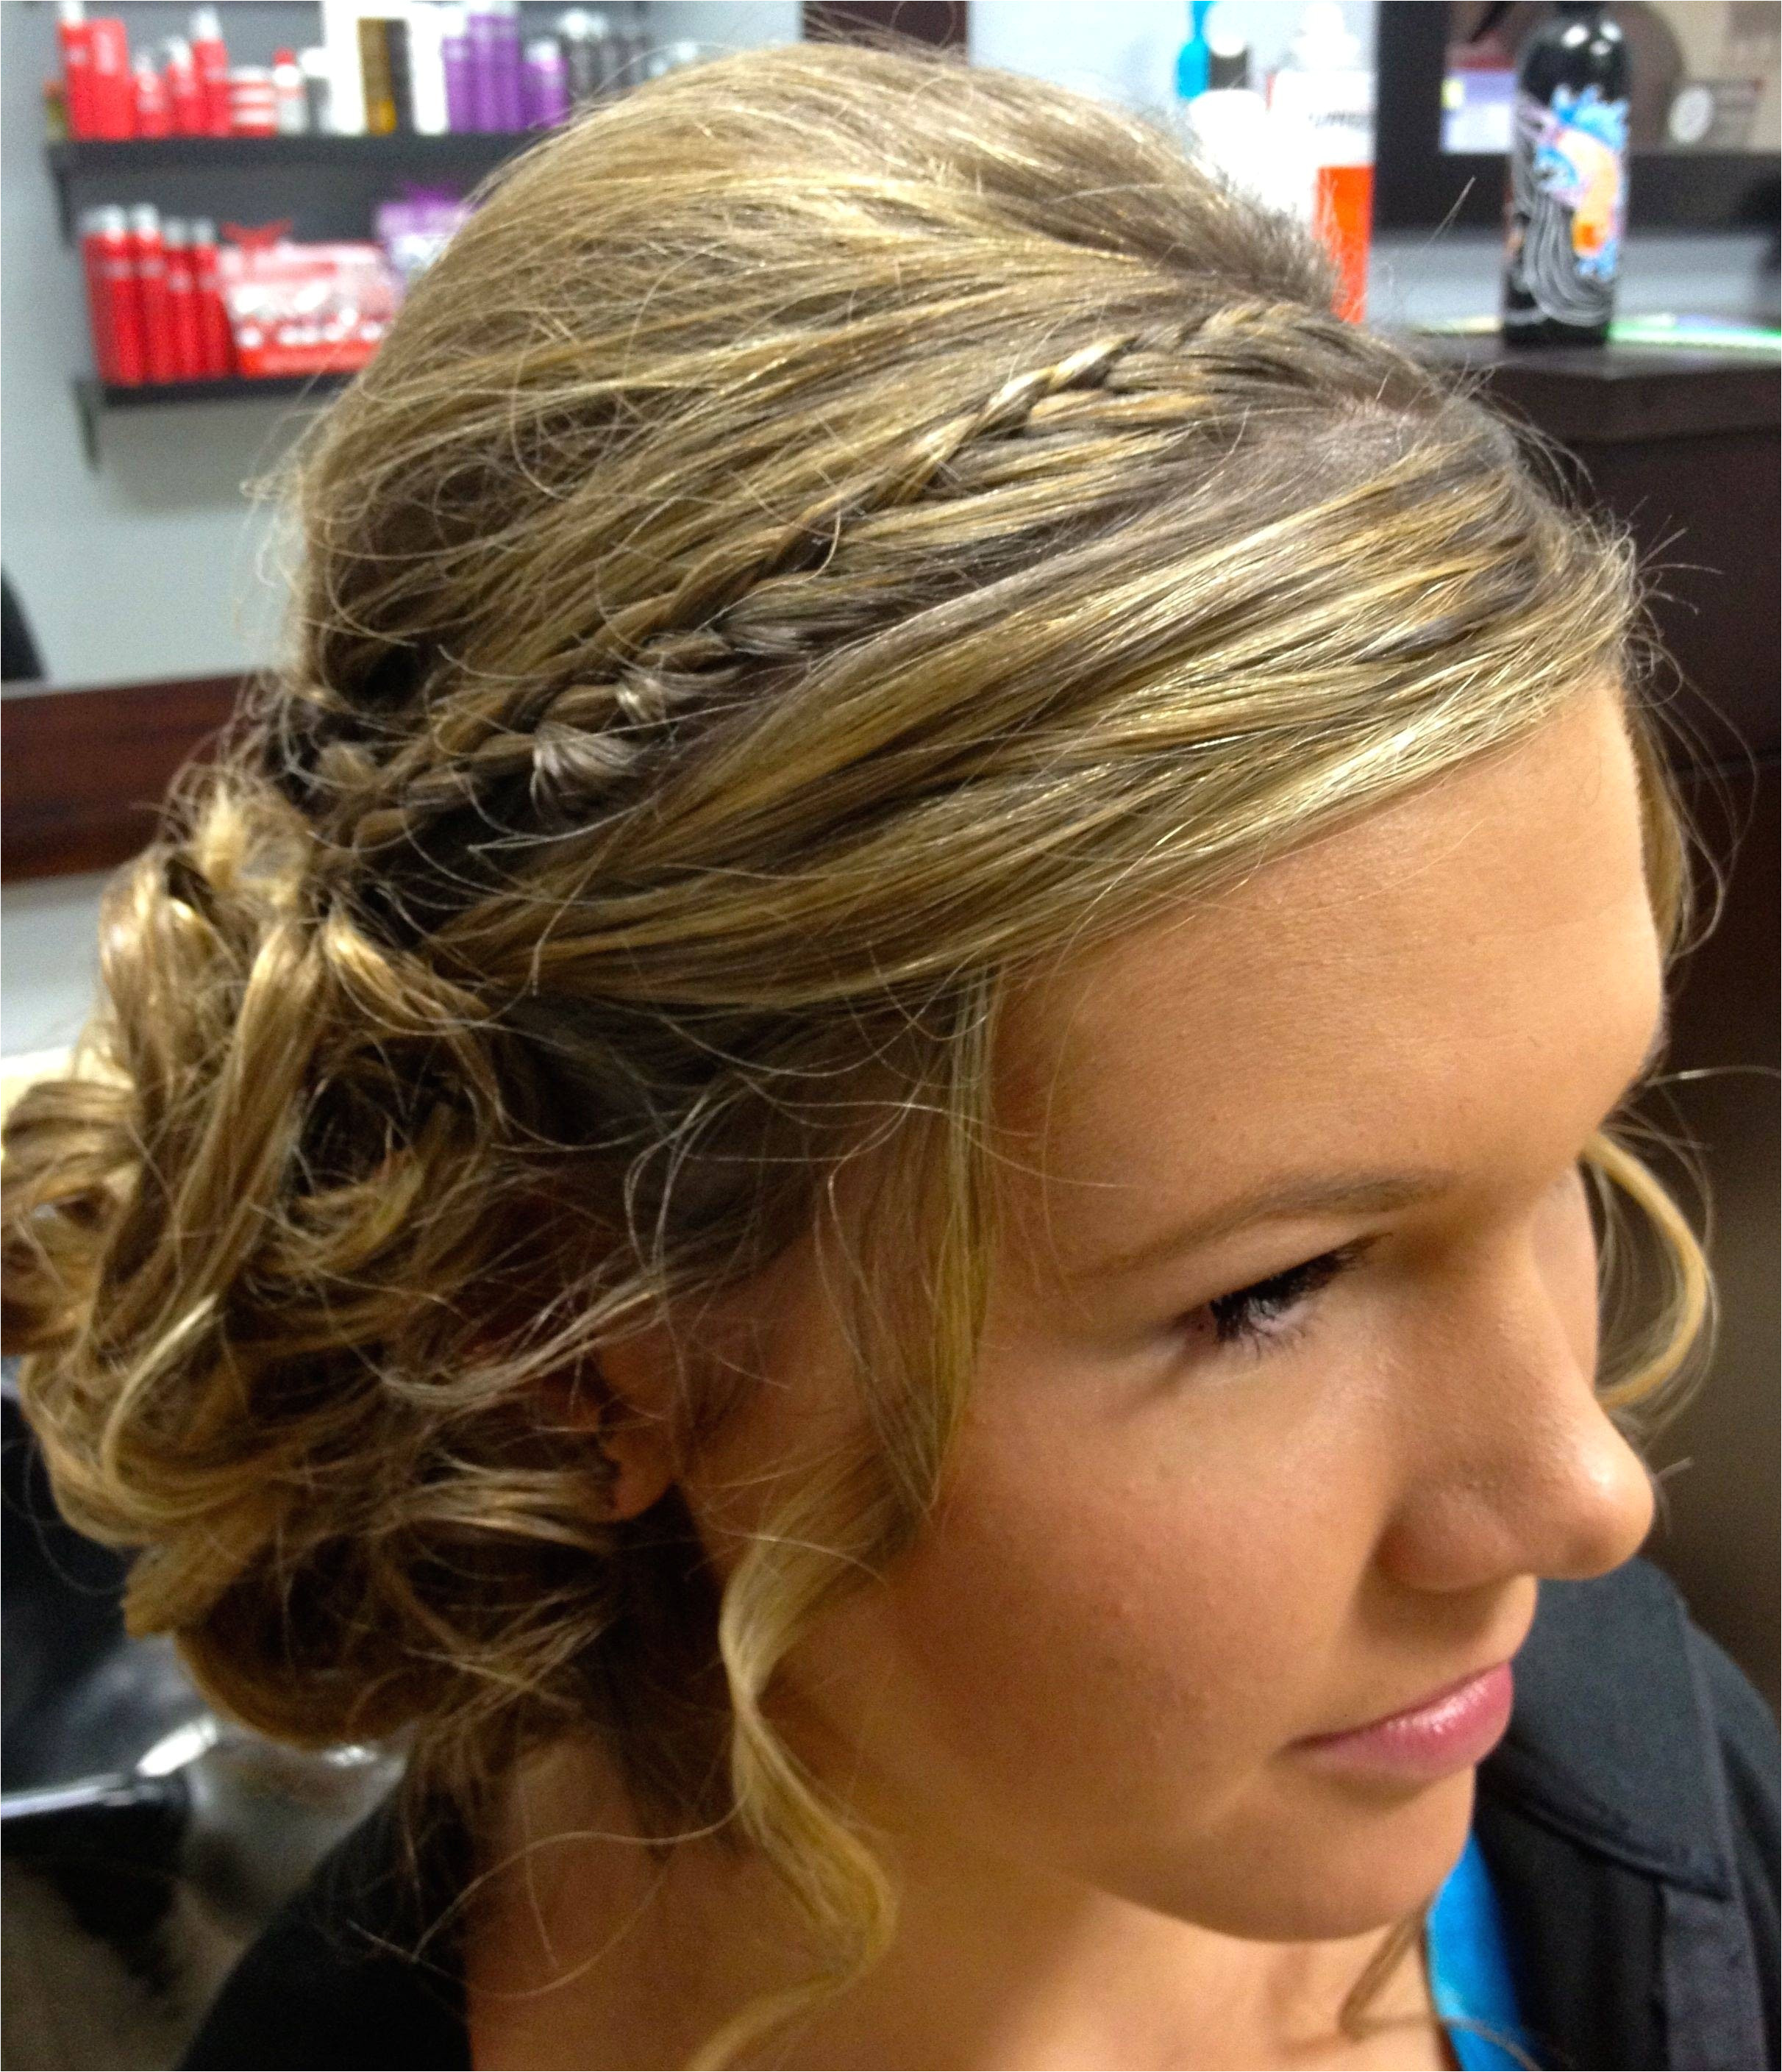 Girls Hairstyle for Wedding Best Wedding Hairstyles 2018 New Inspirational Little Girl Natural